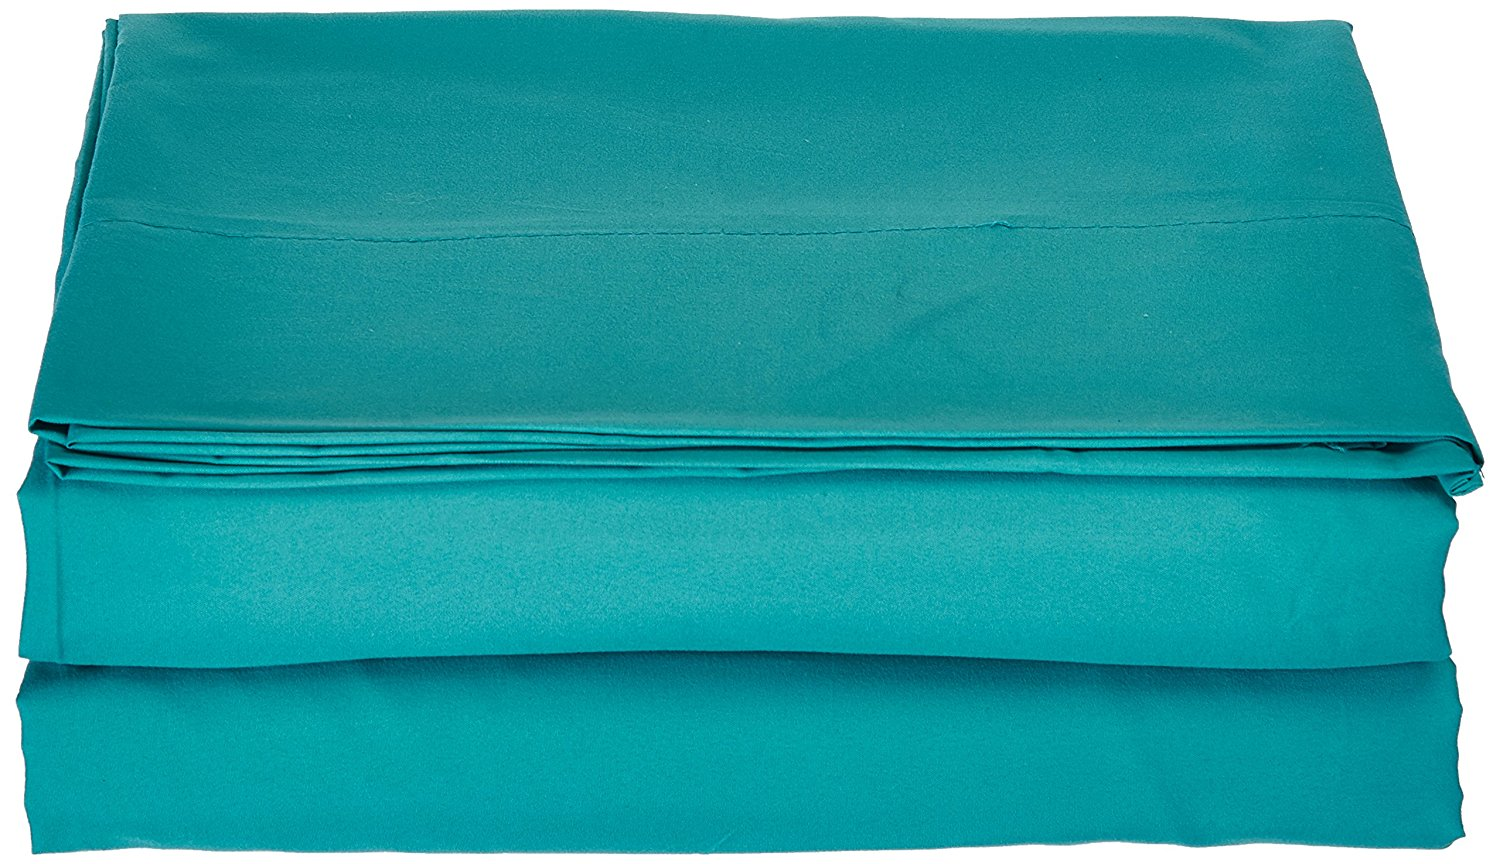 Luxury Fitted Sheet on Amazon! - HIGHEST QUALITY Elegant Comfort Wrinkle-Free 1500 Thread Count Egyptian Quality 1-Piece Fitted Sheet, Twin/Twin XL Size, Turquoise